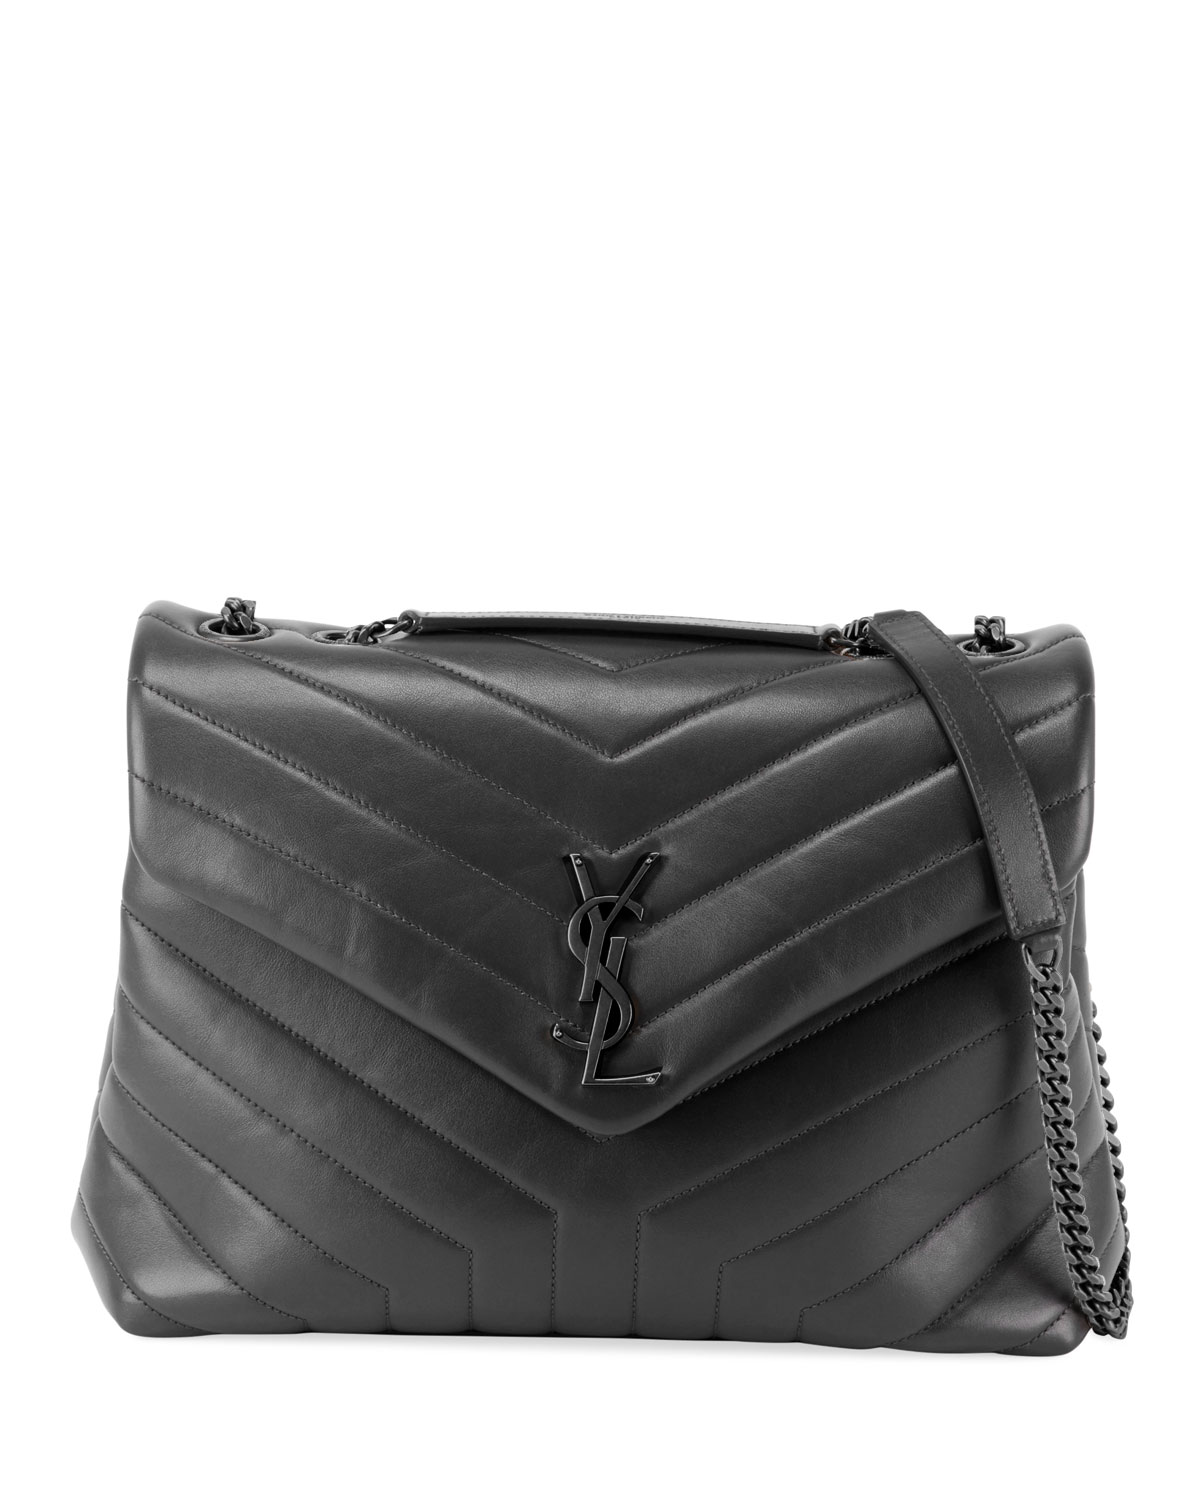 Saint Laurent Loulou Medium YSL Matelasse Calfskin Flap-Top Shoulder Bag, Matte Black Hardware